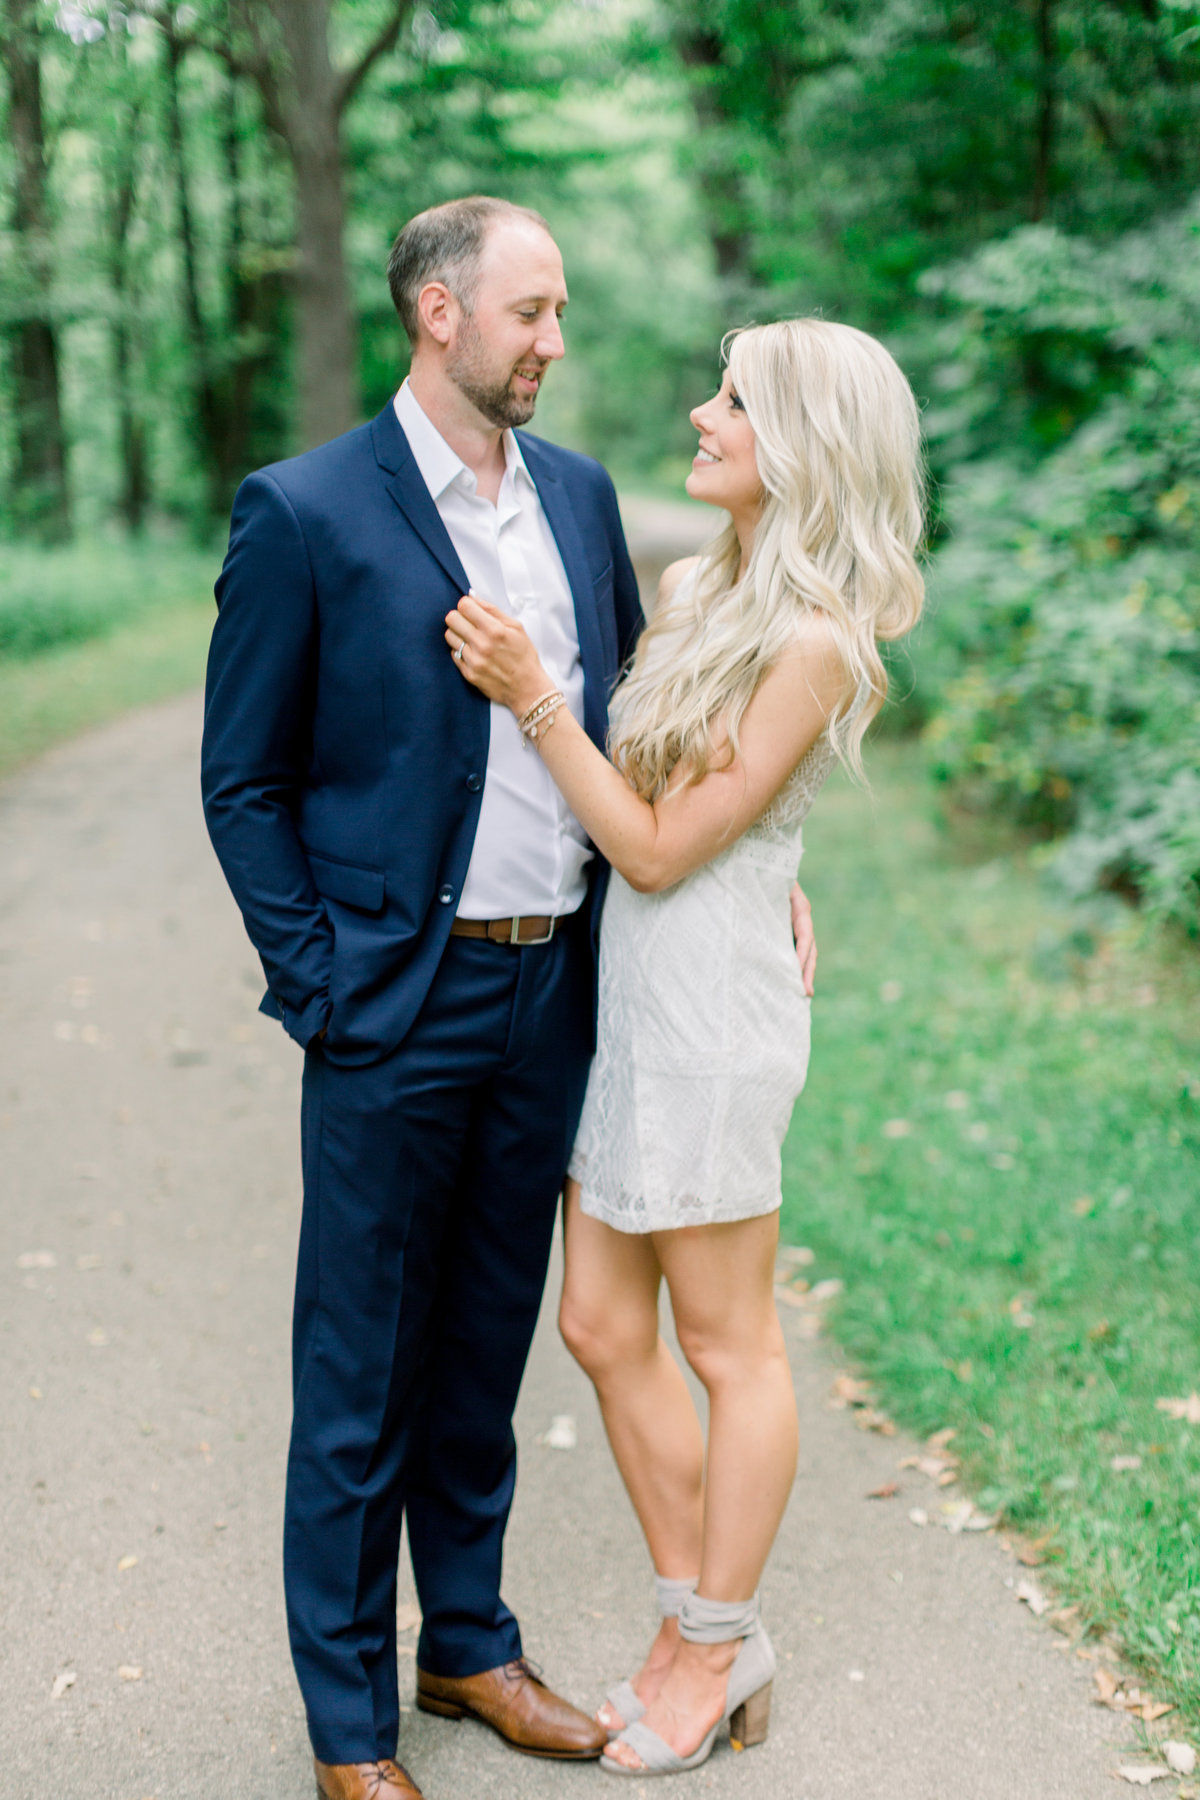 Shaunae-Teske-Photography-Engagements-2018-54